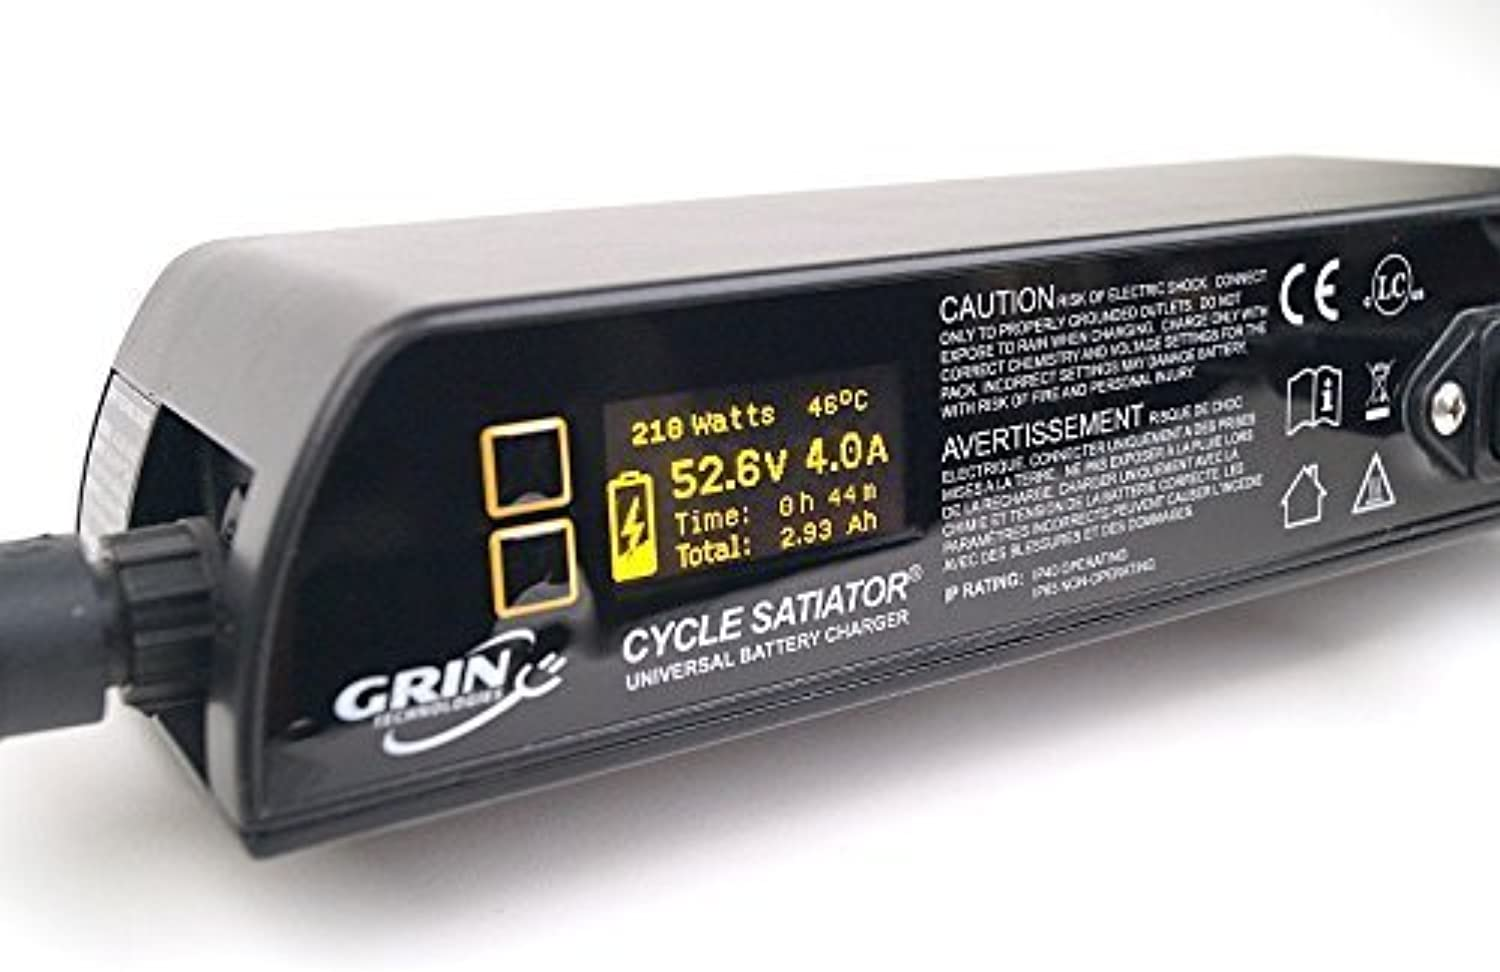 Cycle Satiator  Programmable Electric Bike Battery Charger  24, 36, 48, 52 V